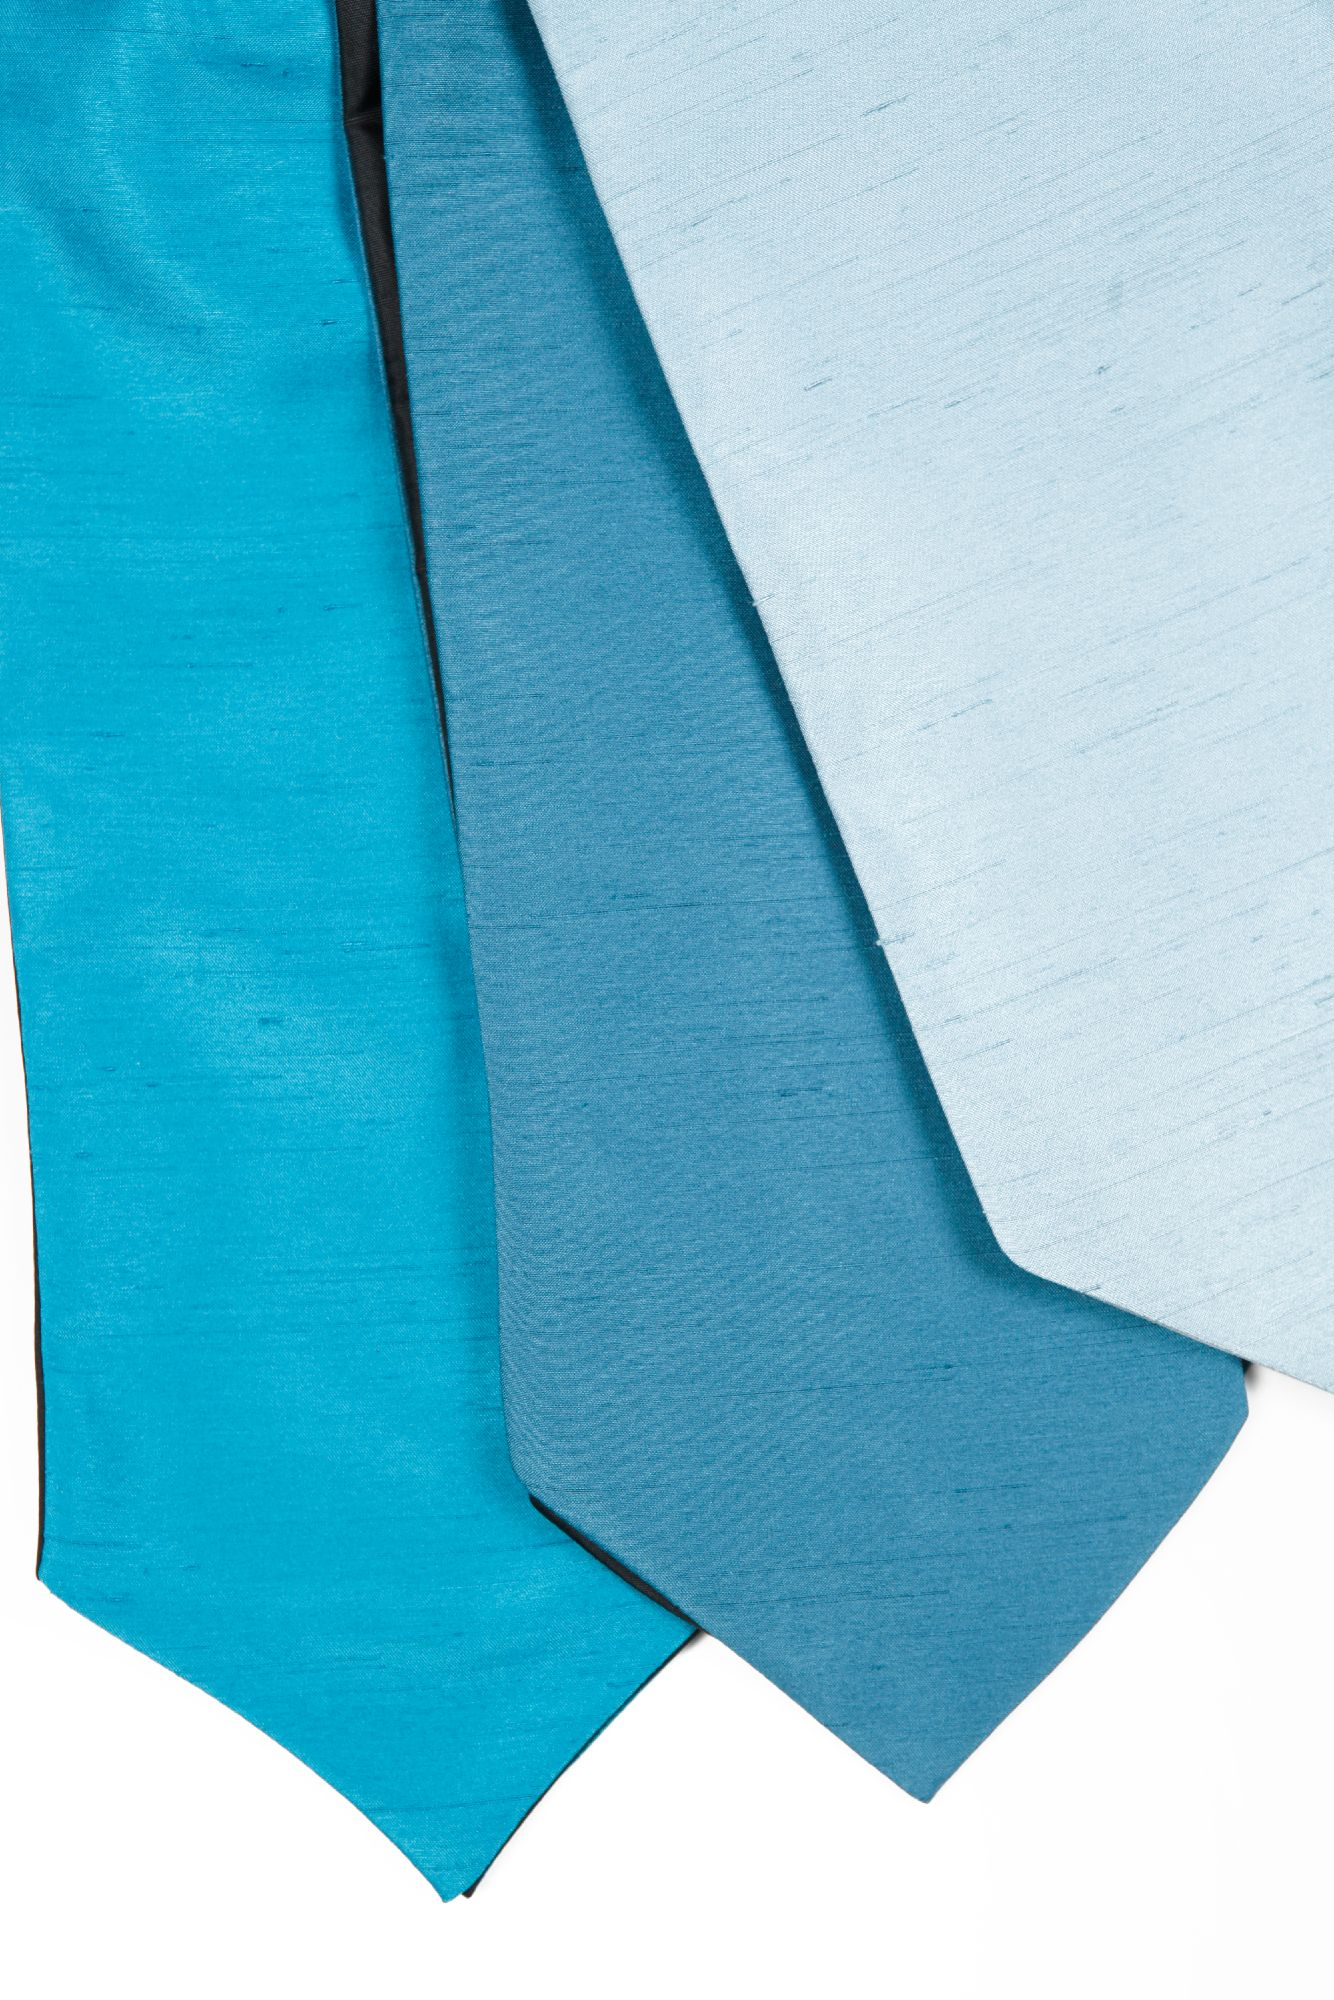 Turquoise cravats | Waterers Wedding Suit Hire | Pinterest | Wedding ...